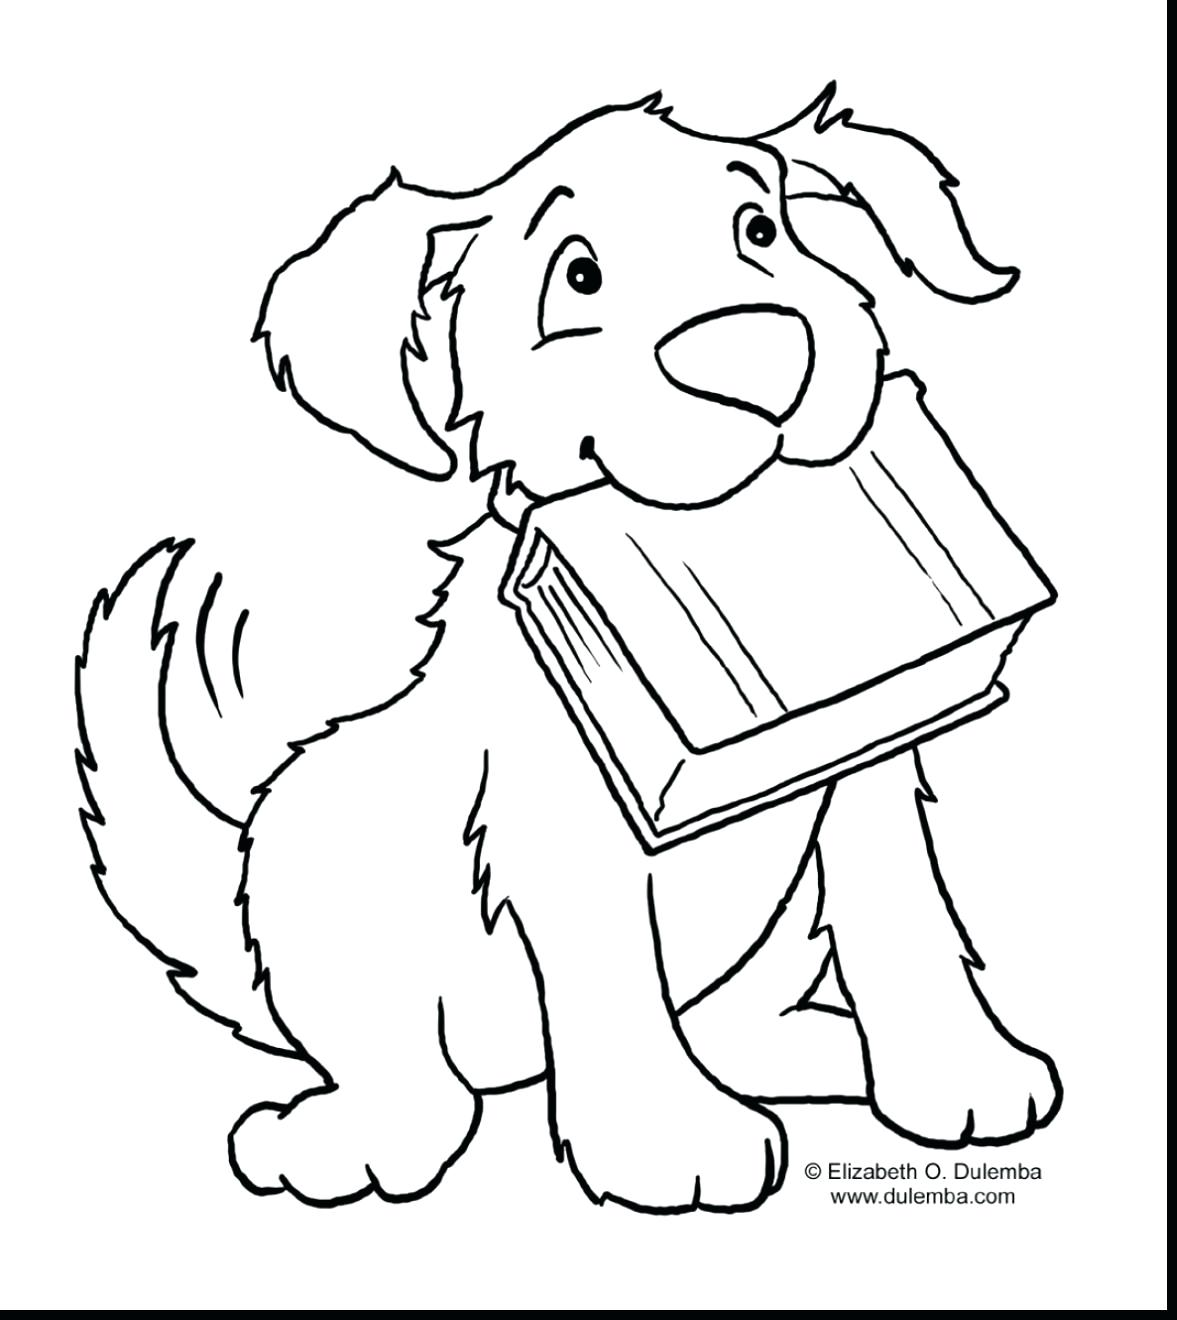 1177x1320 Printable Open Book Printable Pages Outstanding Dogs Coloring